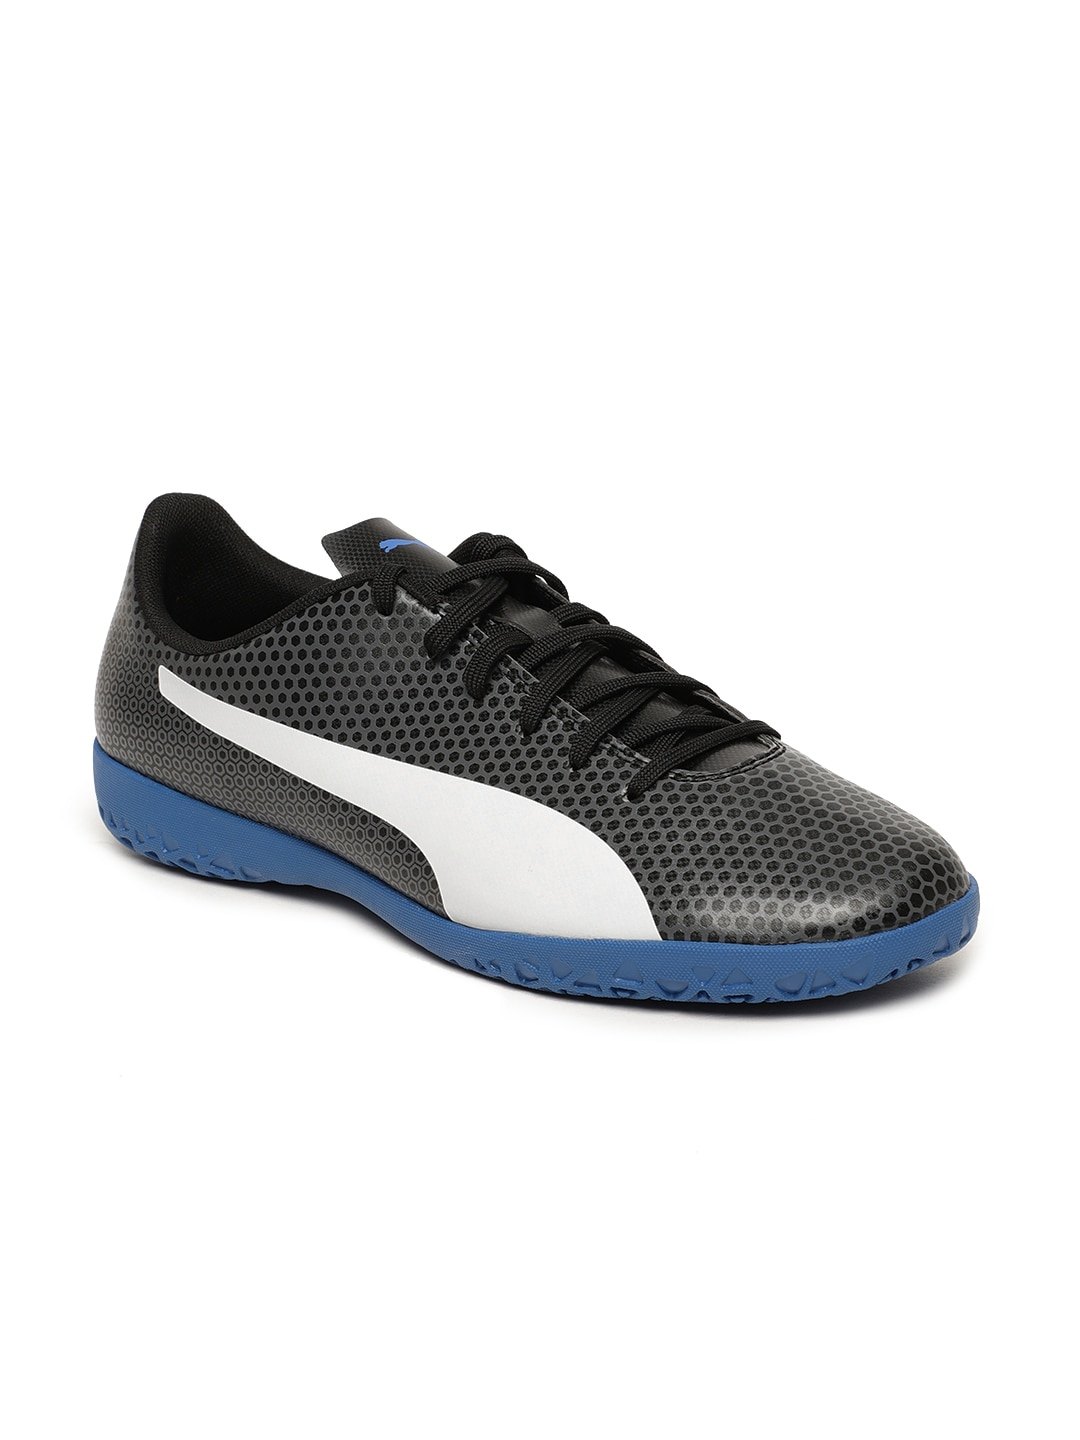 537f8d575452 Football Shoes - Buy Football Studs Online for Men   Women in India